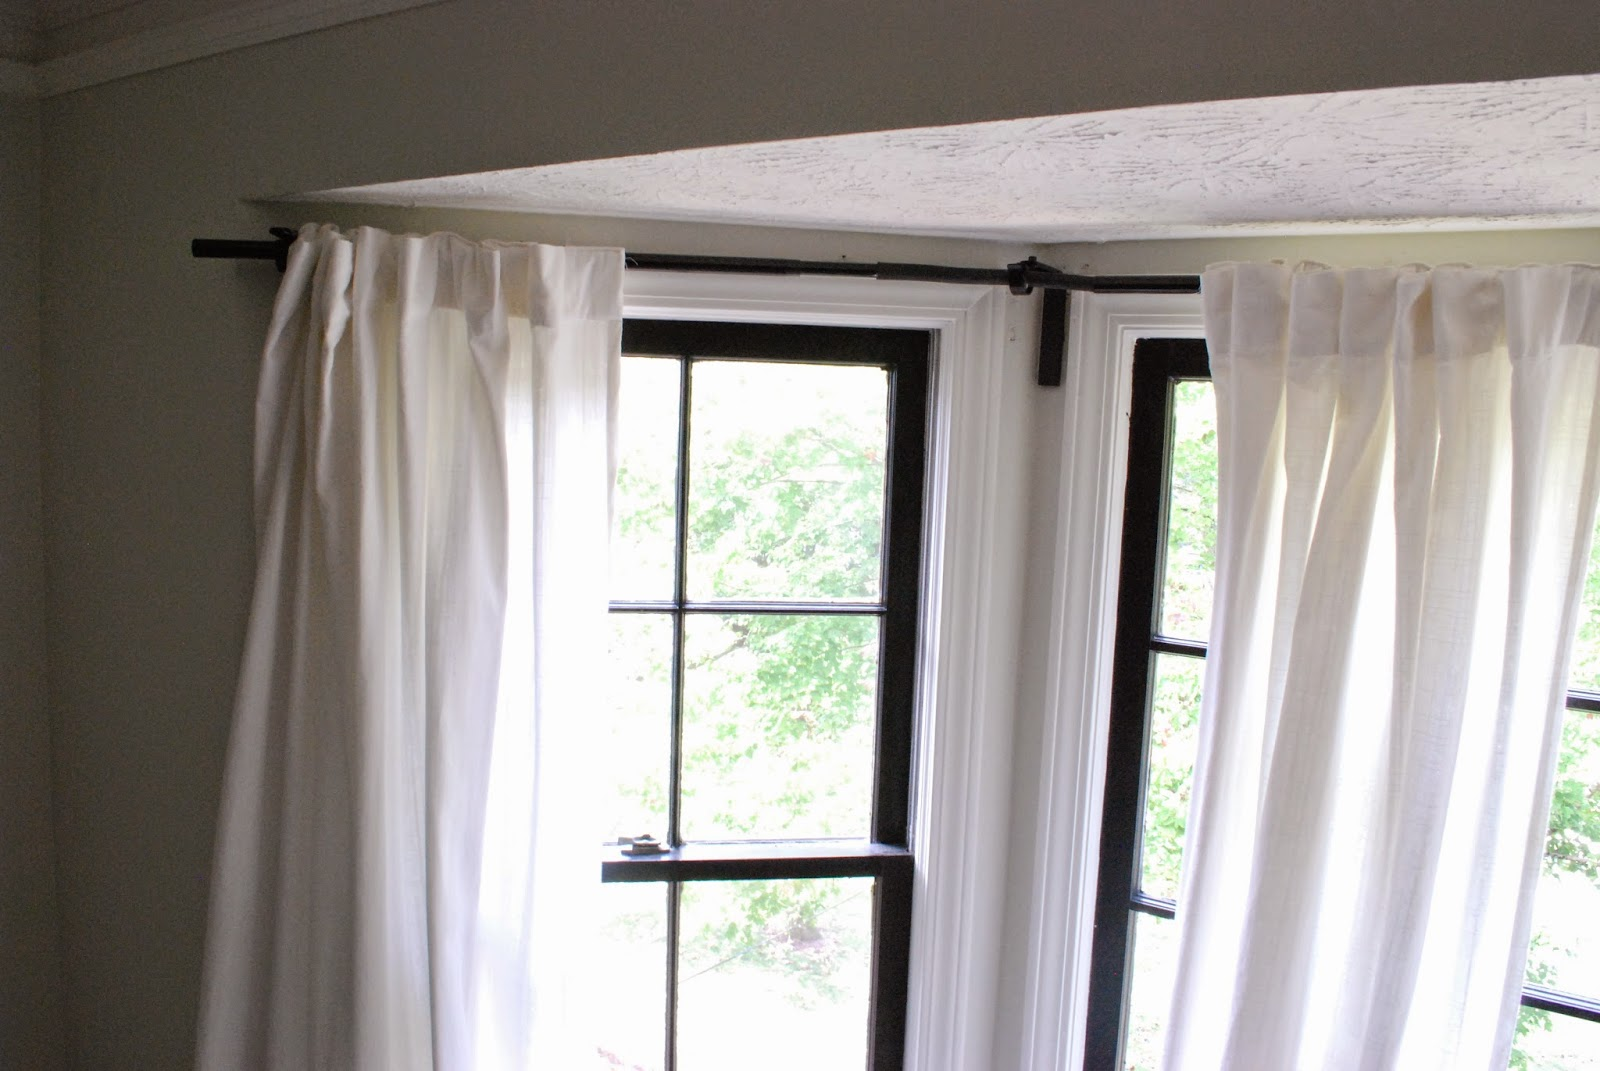 Curtain Track Lowes | Curtain Rod Corner Connector | Home Depot Bay Window Curtain Rod